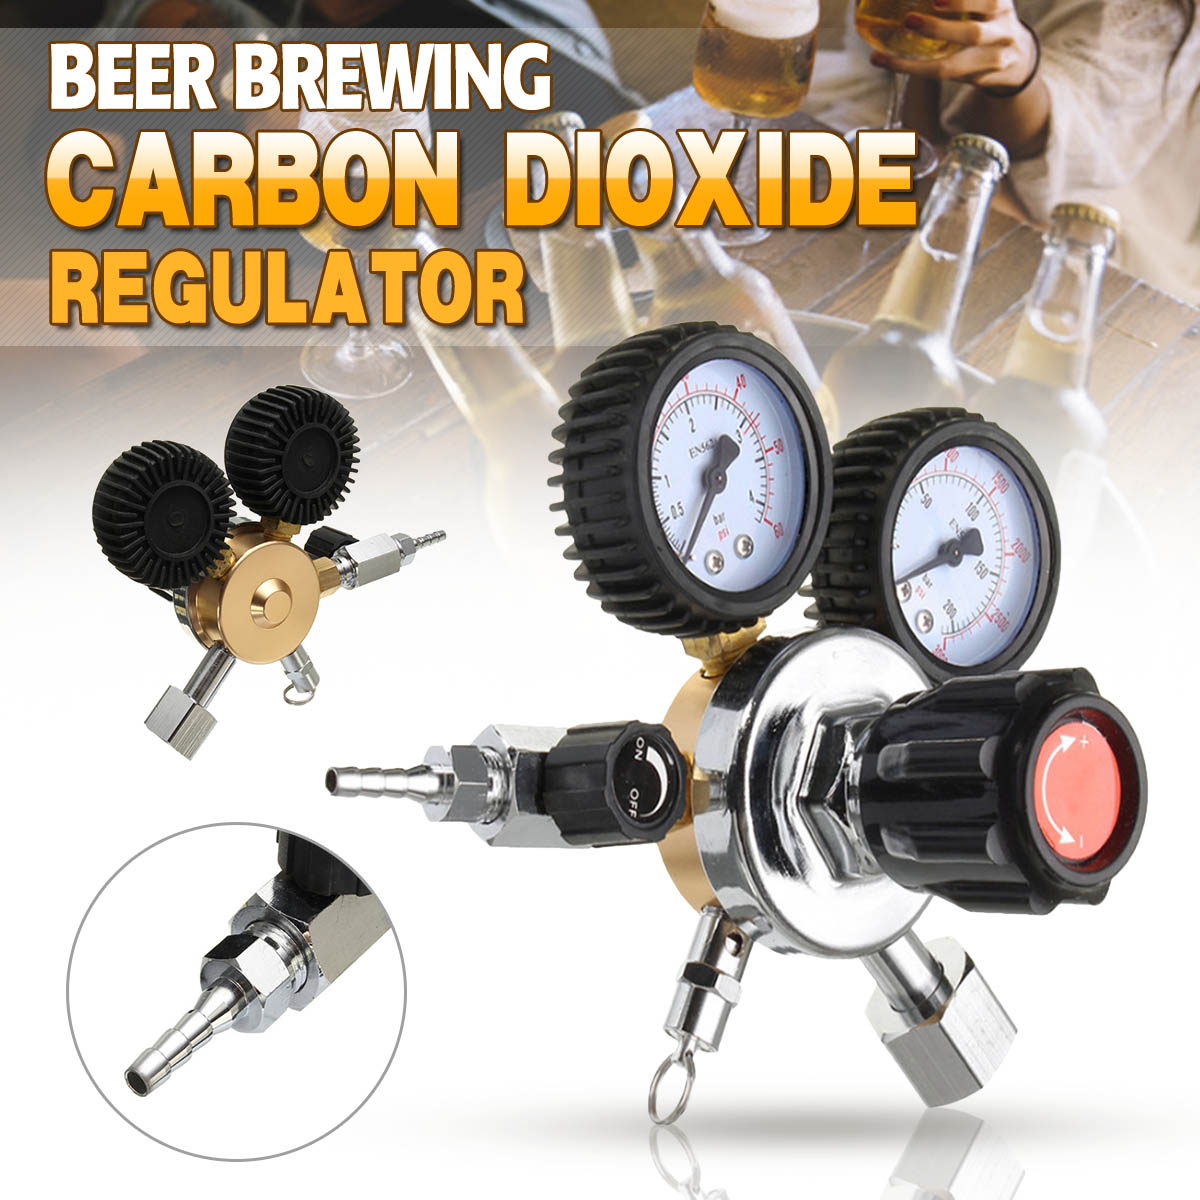 NEW CO2 Gas Bottle Regulator Carbon Dioxide CO2 Regulators Pressure Reducer For Beverage Beer W21.8 Double Gauge Regulator